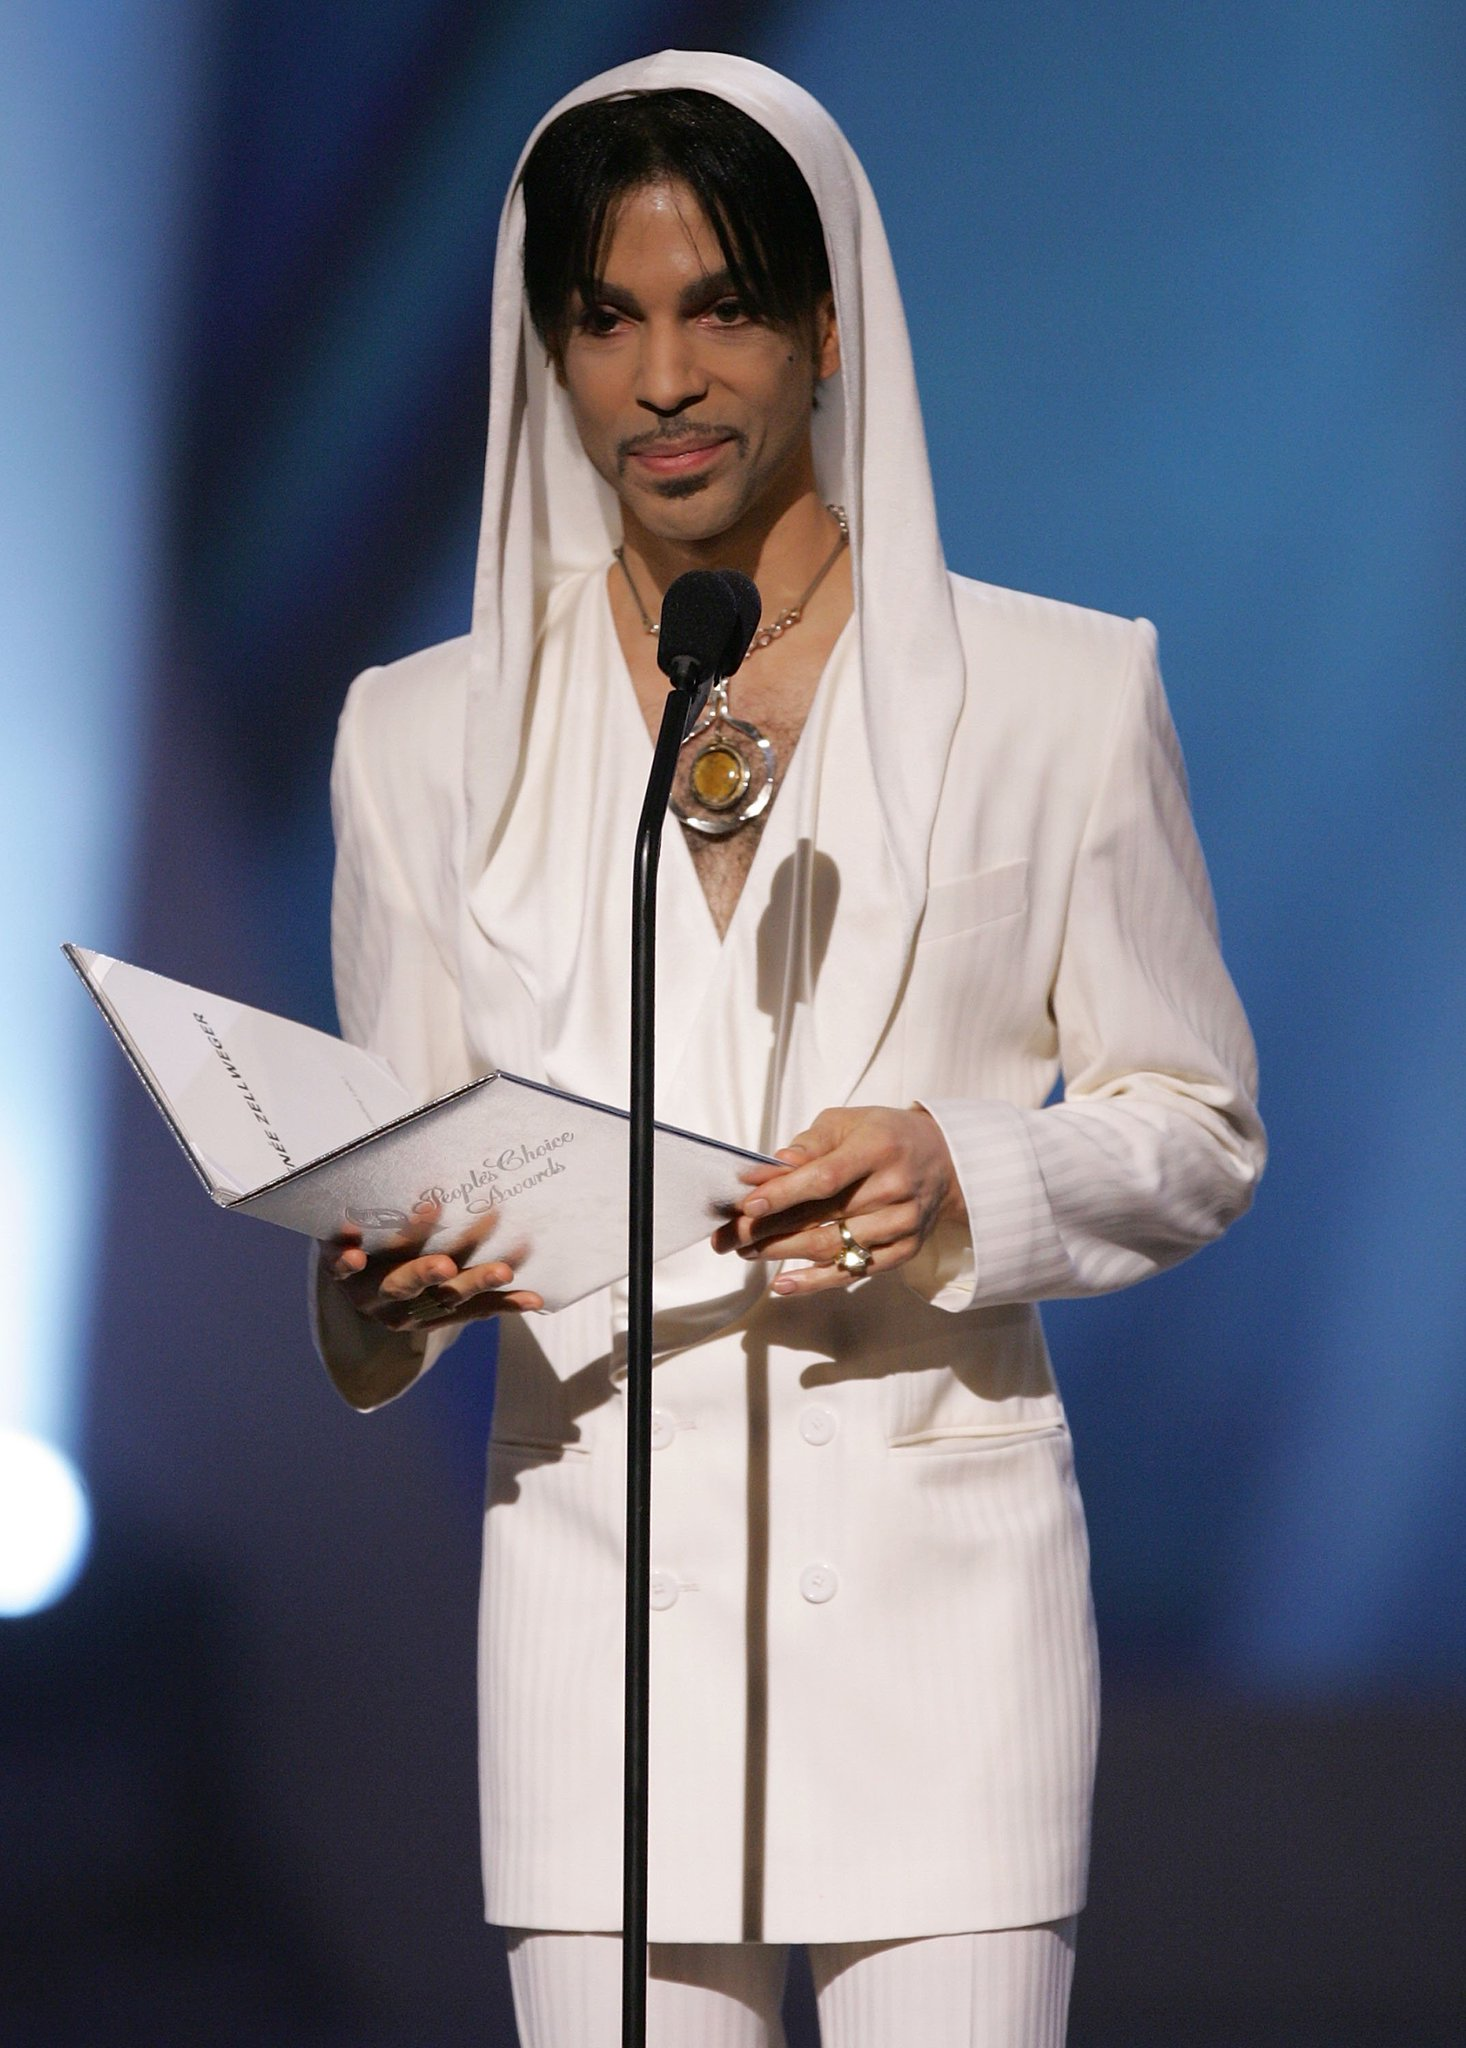 Prince's estate is reportedly accusing Roc Nation of falsifying documents in streaming deal. https://t.co/pqkypnRDY3 https://t.co/sWaixcIhxu